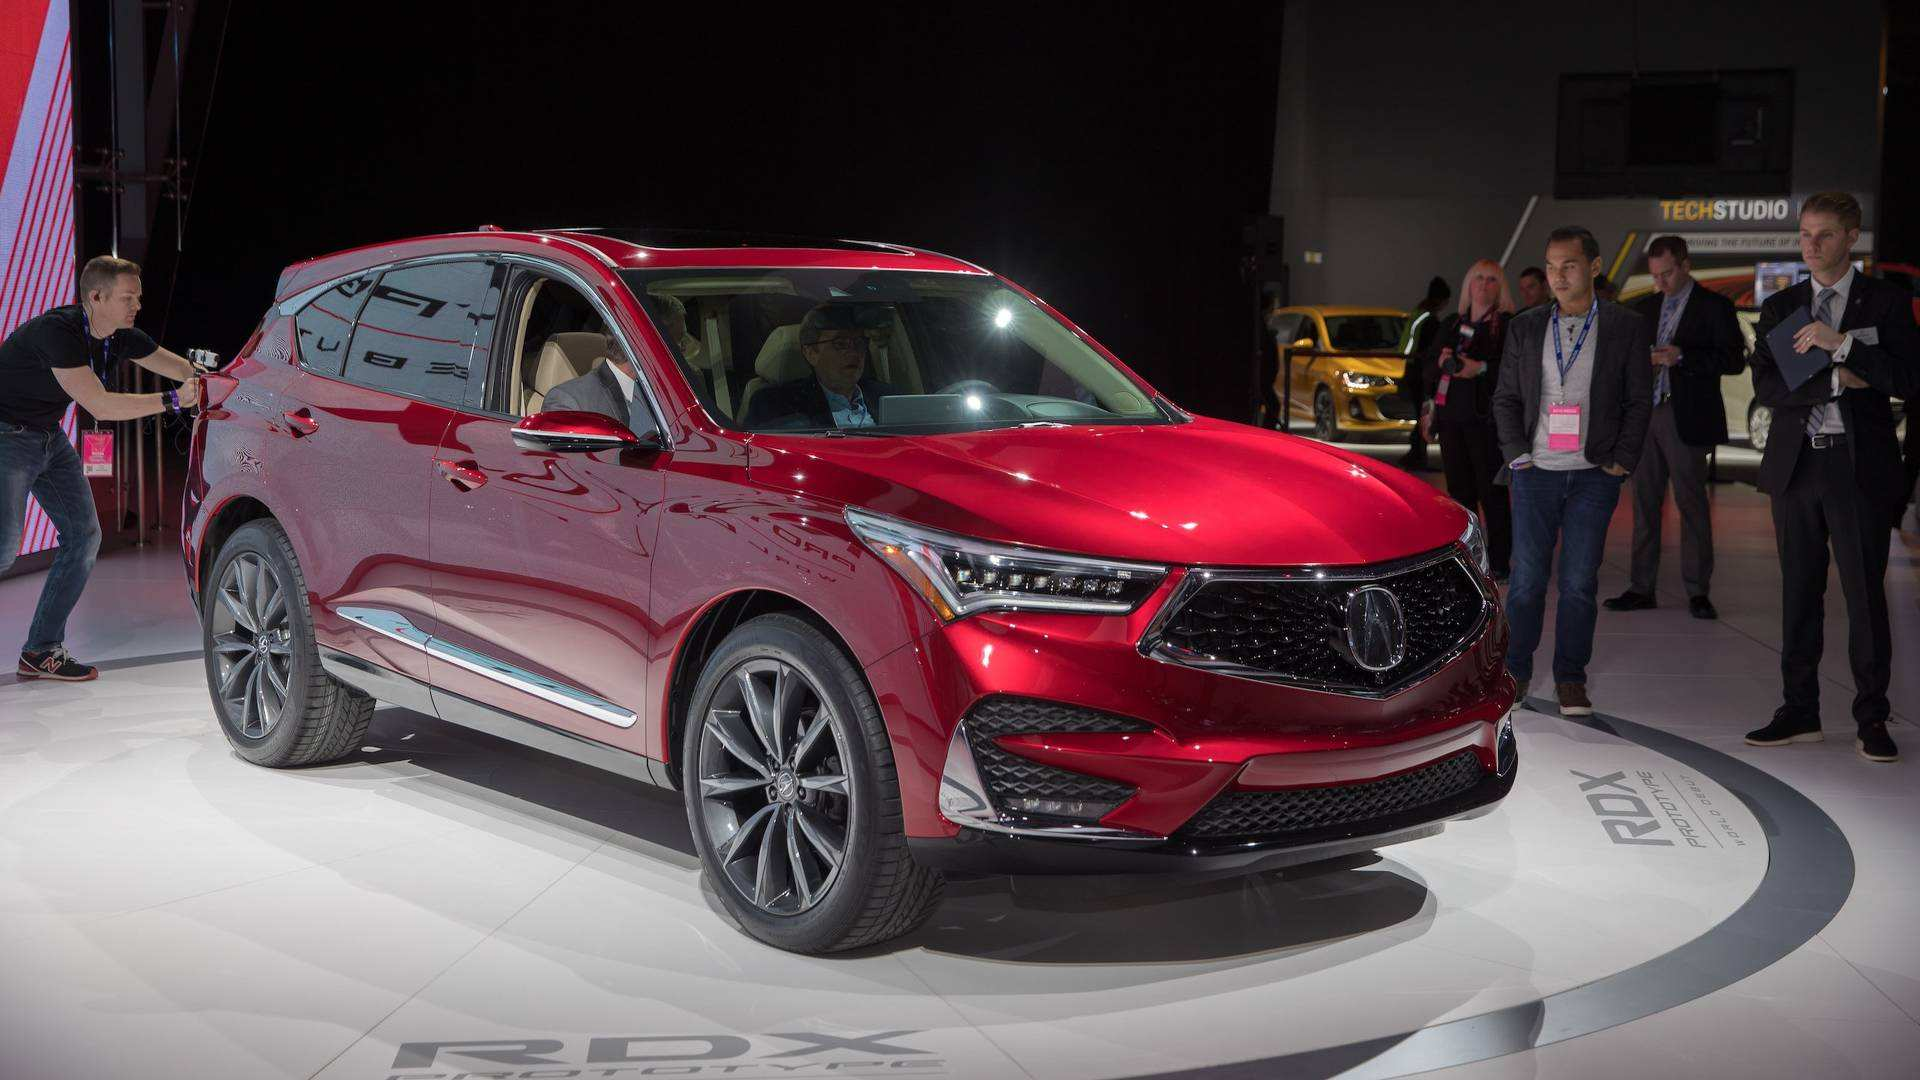 49 Concept of 2019 Acura Rdx Release Date Exterior for 2019 Acura Rdx Release Date